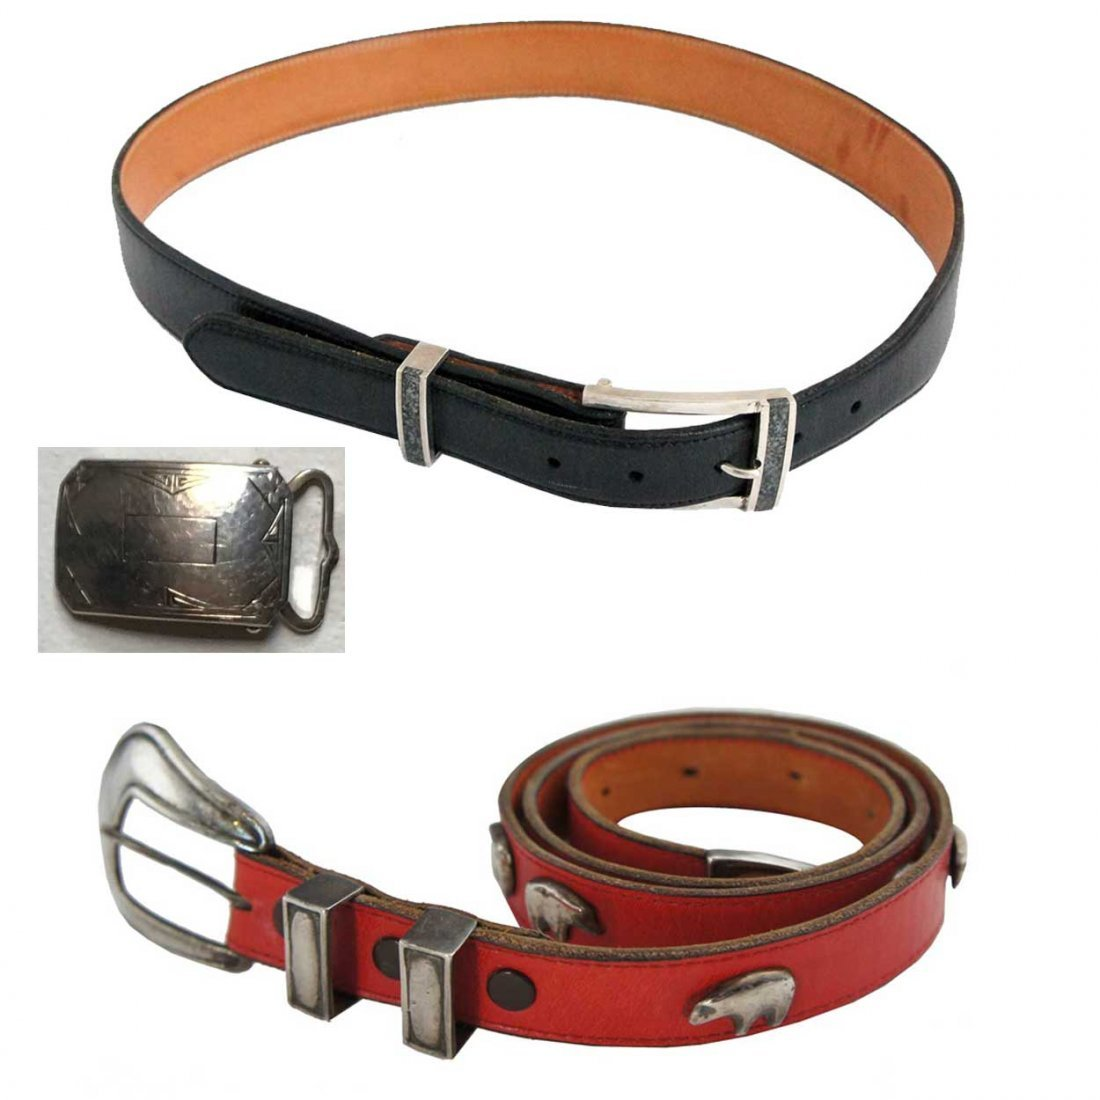 Two Vintage Leather and Sterling Silver Belts